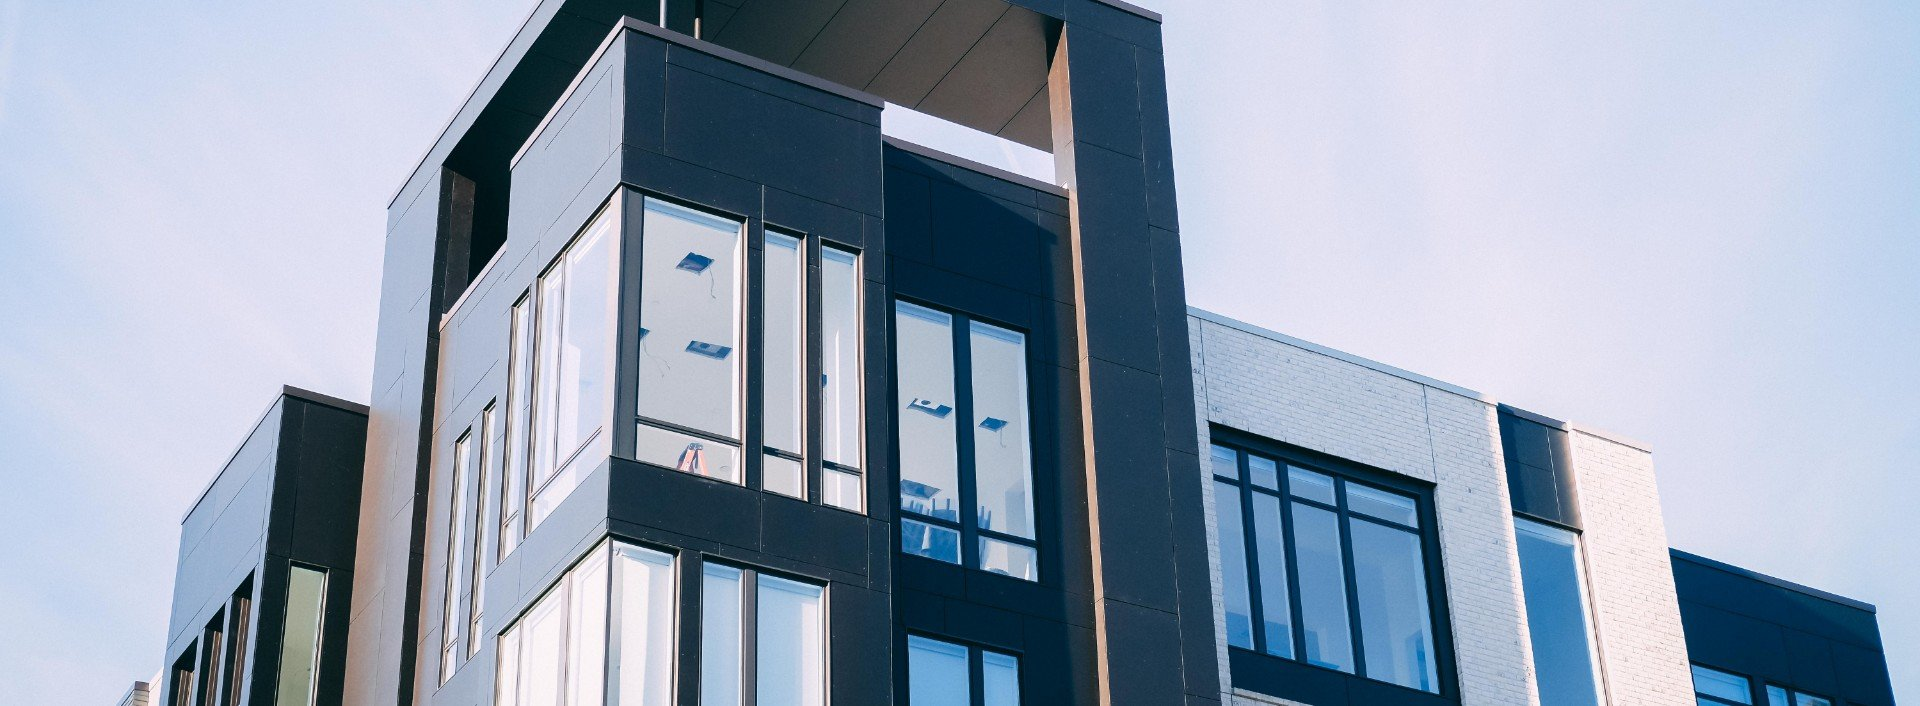 Modern apartment building with large glass windows- English for renting an apartment